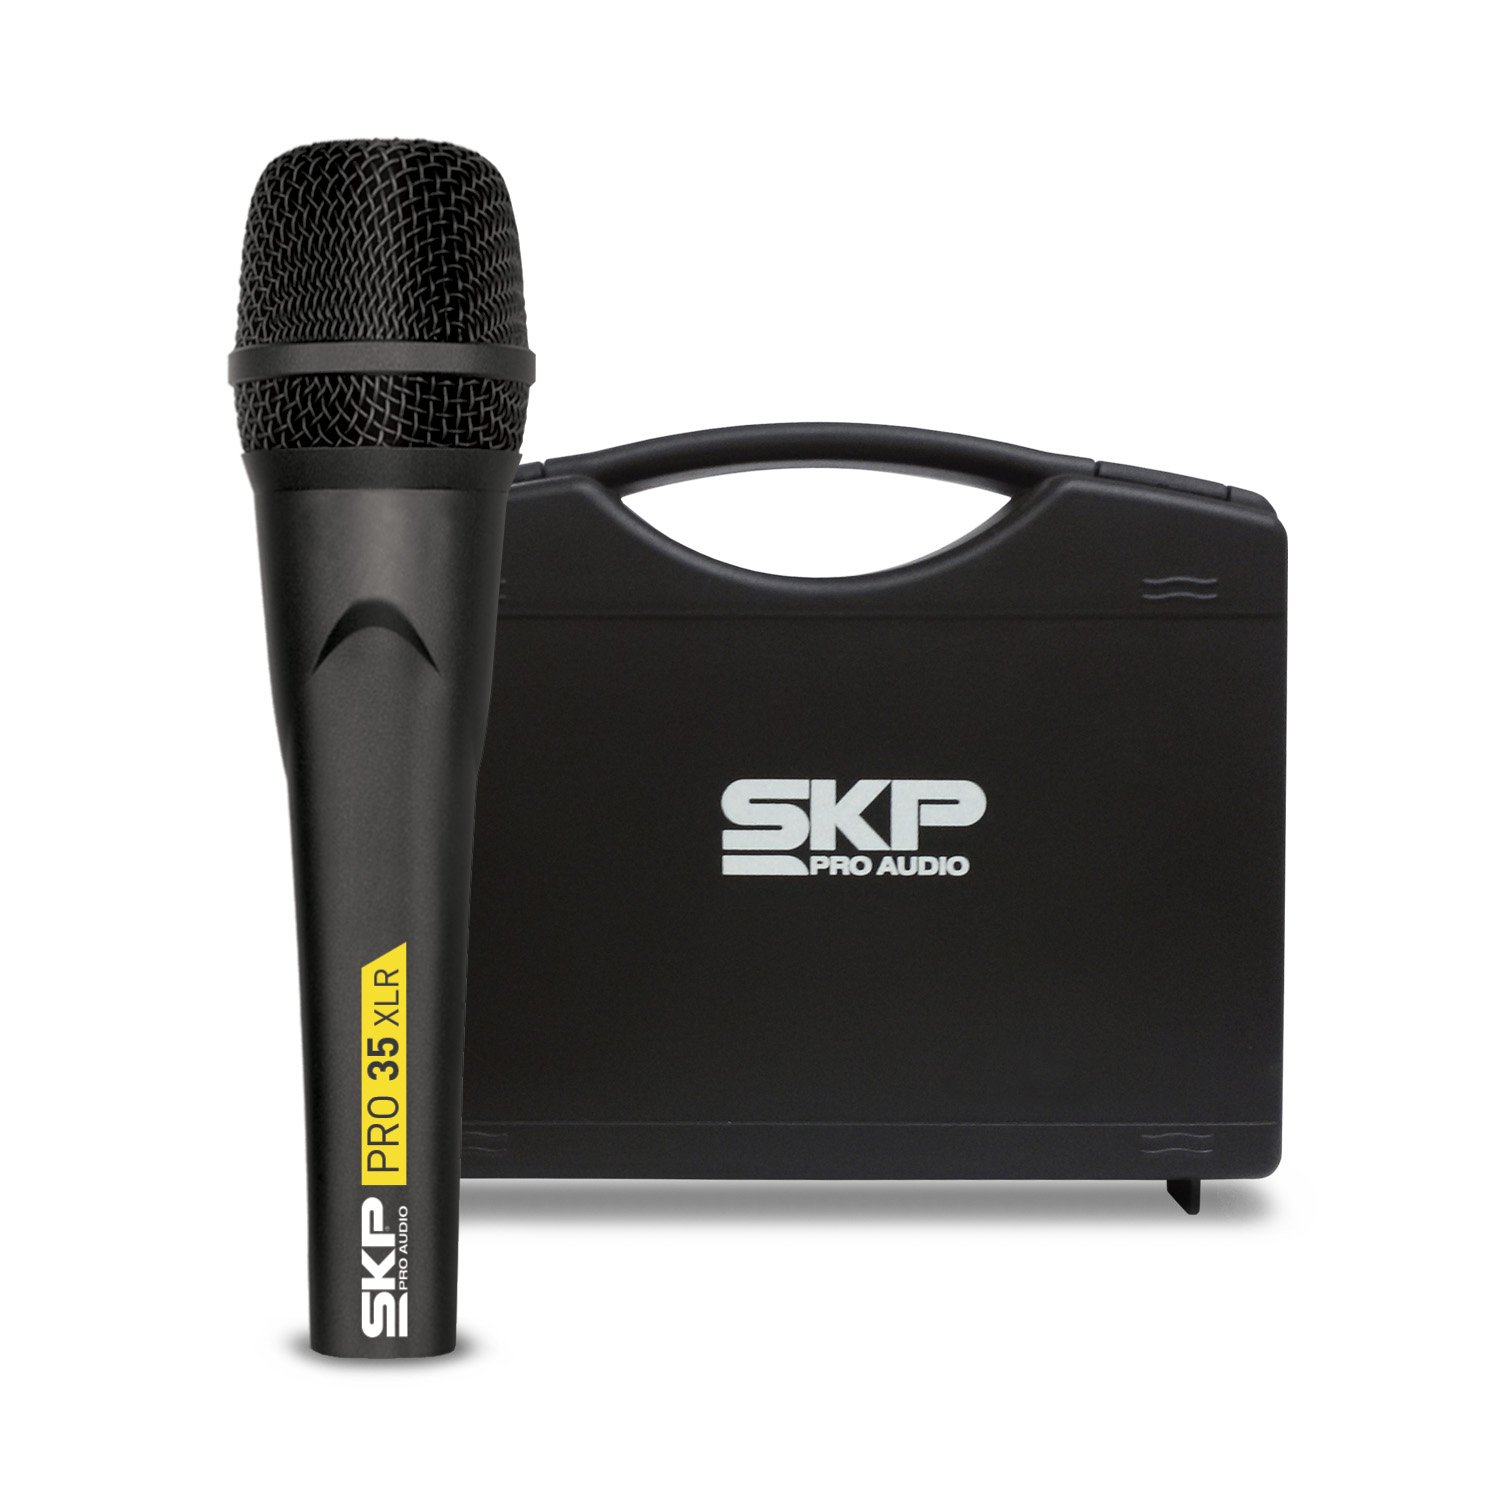 SKP PRO AUDIO PRO-35XLR Dynamic, Cardioid Microphone Made with Germany Capsule, Metallic Body XLR Cable 17ft - (5m) Plastic Case Included by SKP Pro Audio